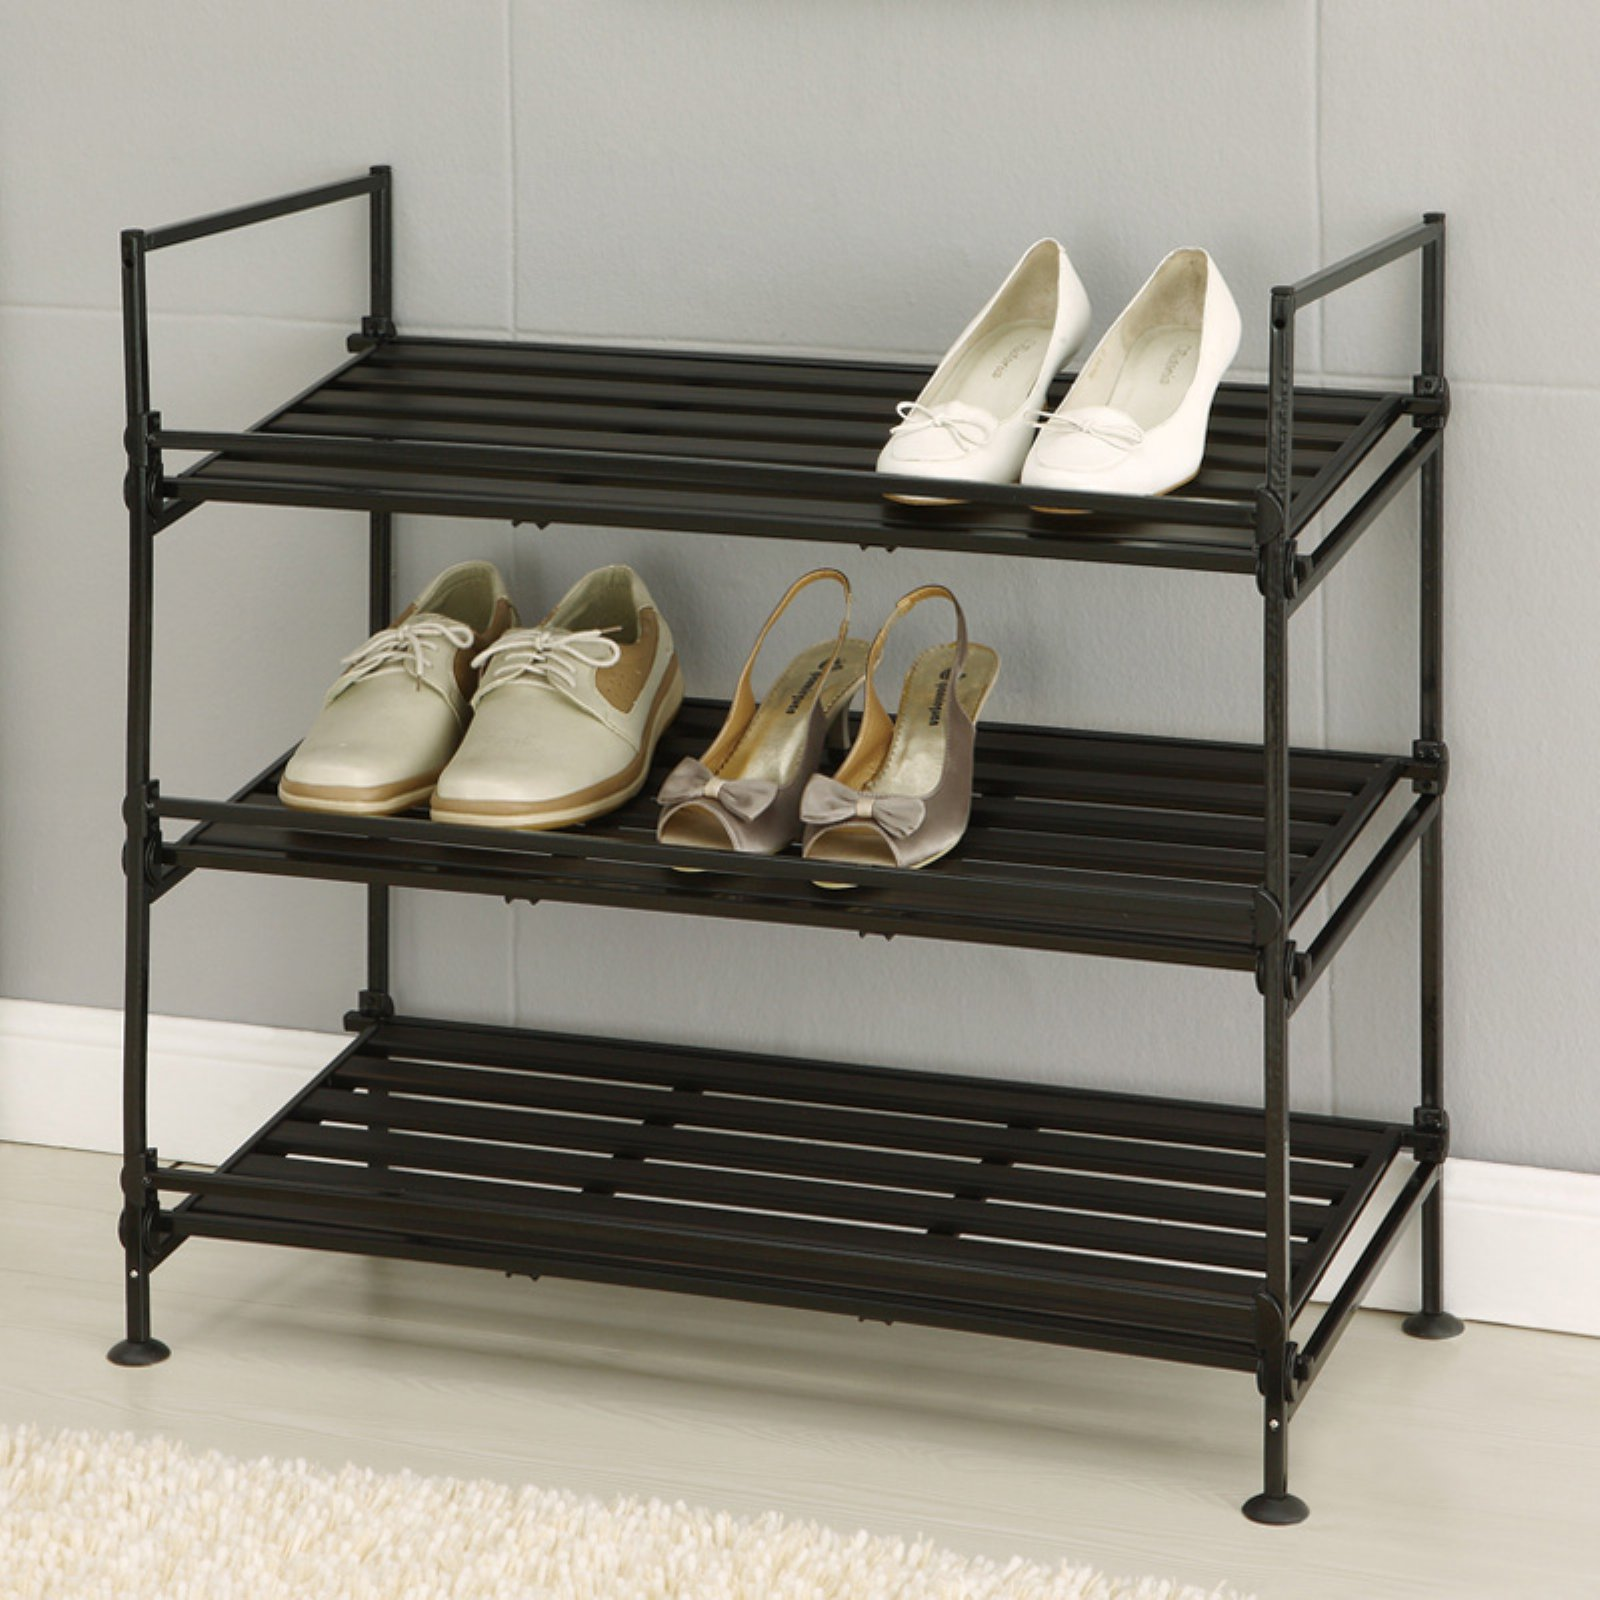 Ebonize 3 Tier Shoe Rack